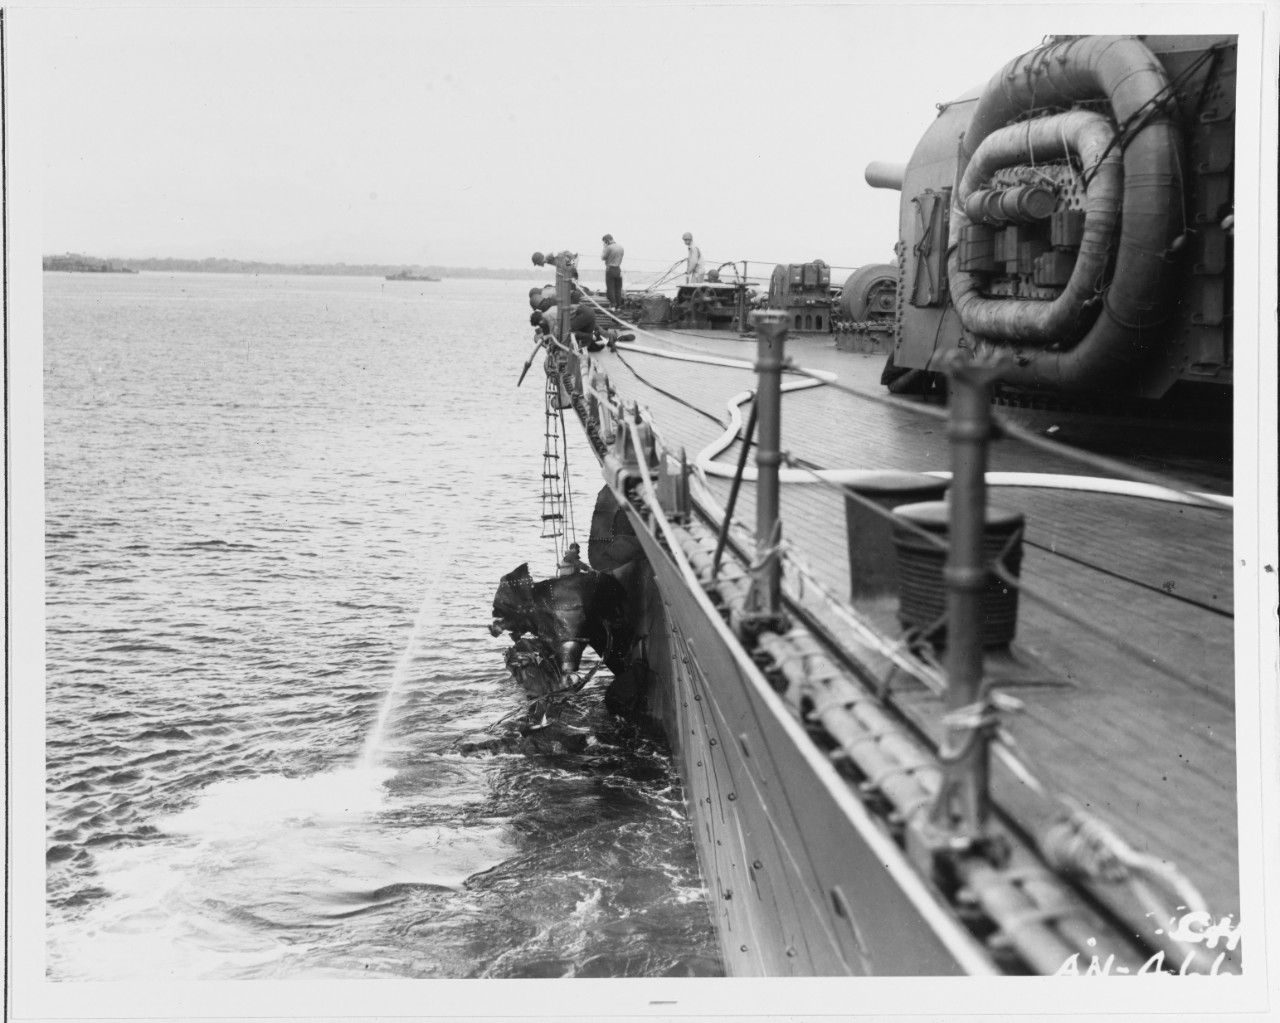 Chicago crewmen cut away damaged plating from where the Japanese torpedo struck to enable the damaged cruiser to get underway following the Battle of Savo Island, 9 August 1942. The photographer's glass captures the view looking forward along the port side, and the 8-inch guns of Turret I on the upper right. Note the life rafts hung on the side of the turret and the destroyers in the distance. (U.S. Navy Photograph 80-G-34685, National Archives and Records Administration, Still Pictures Branch, College Park, Md.)